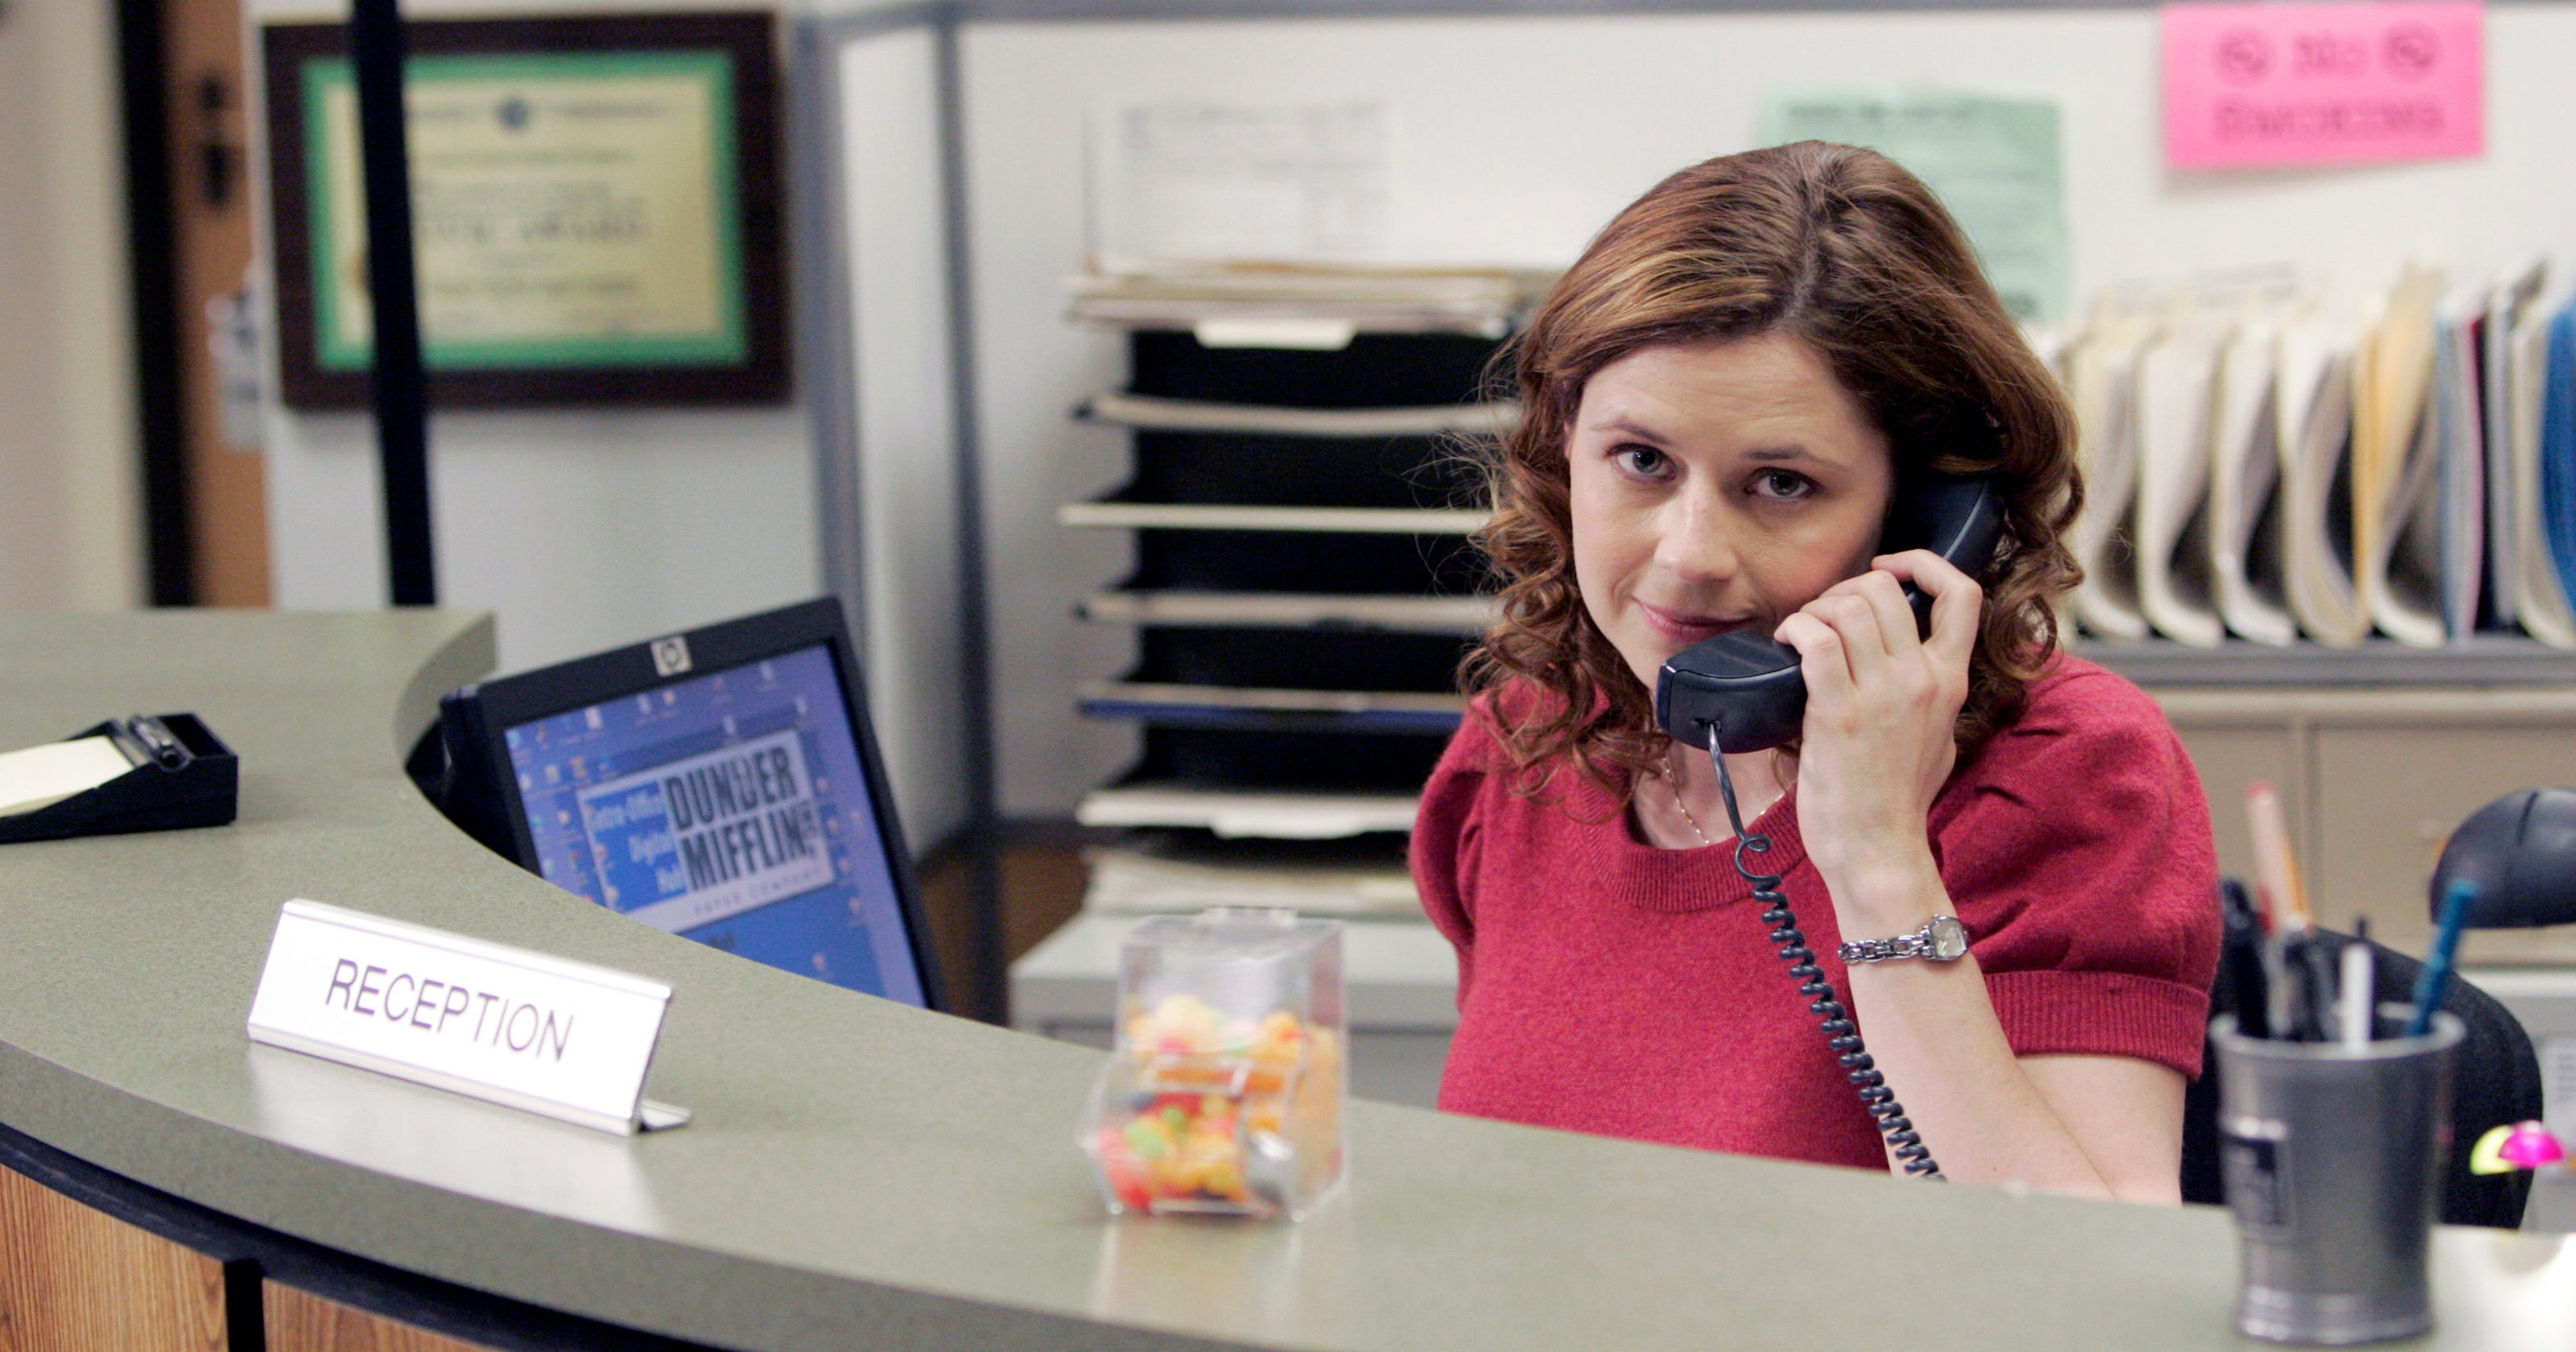 Chilis Lifts Ban On Office Character Pam Beesly